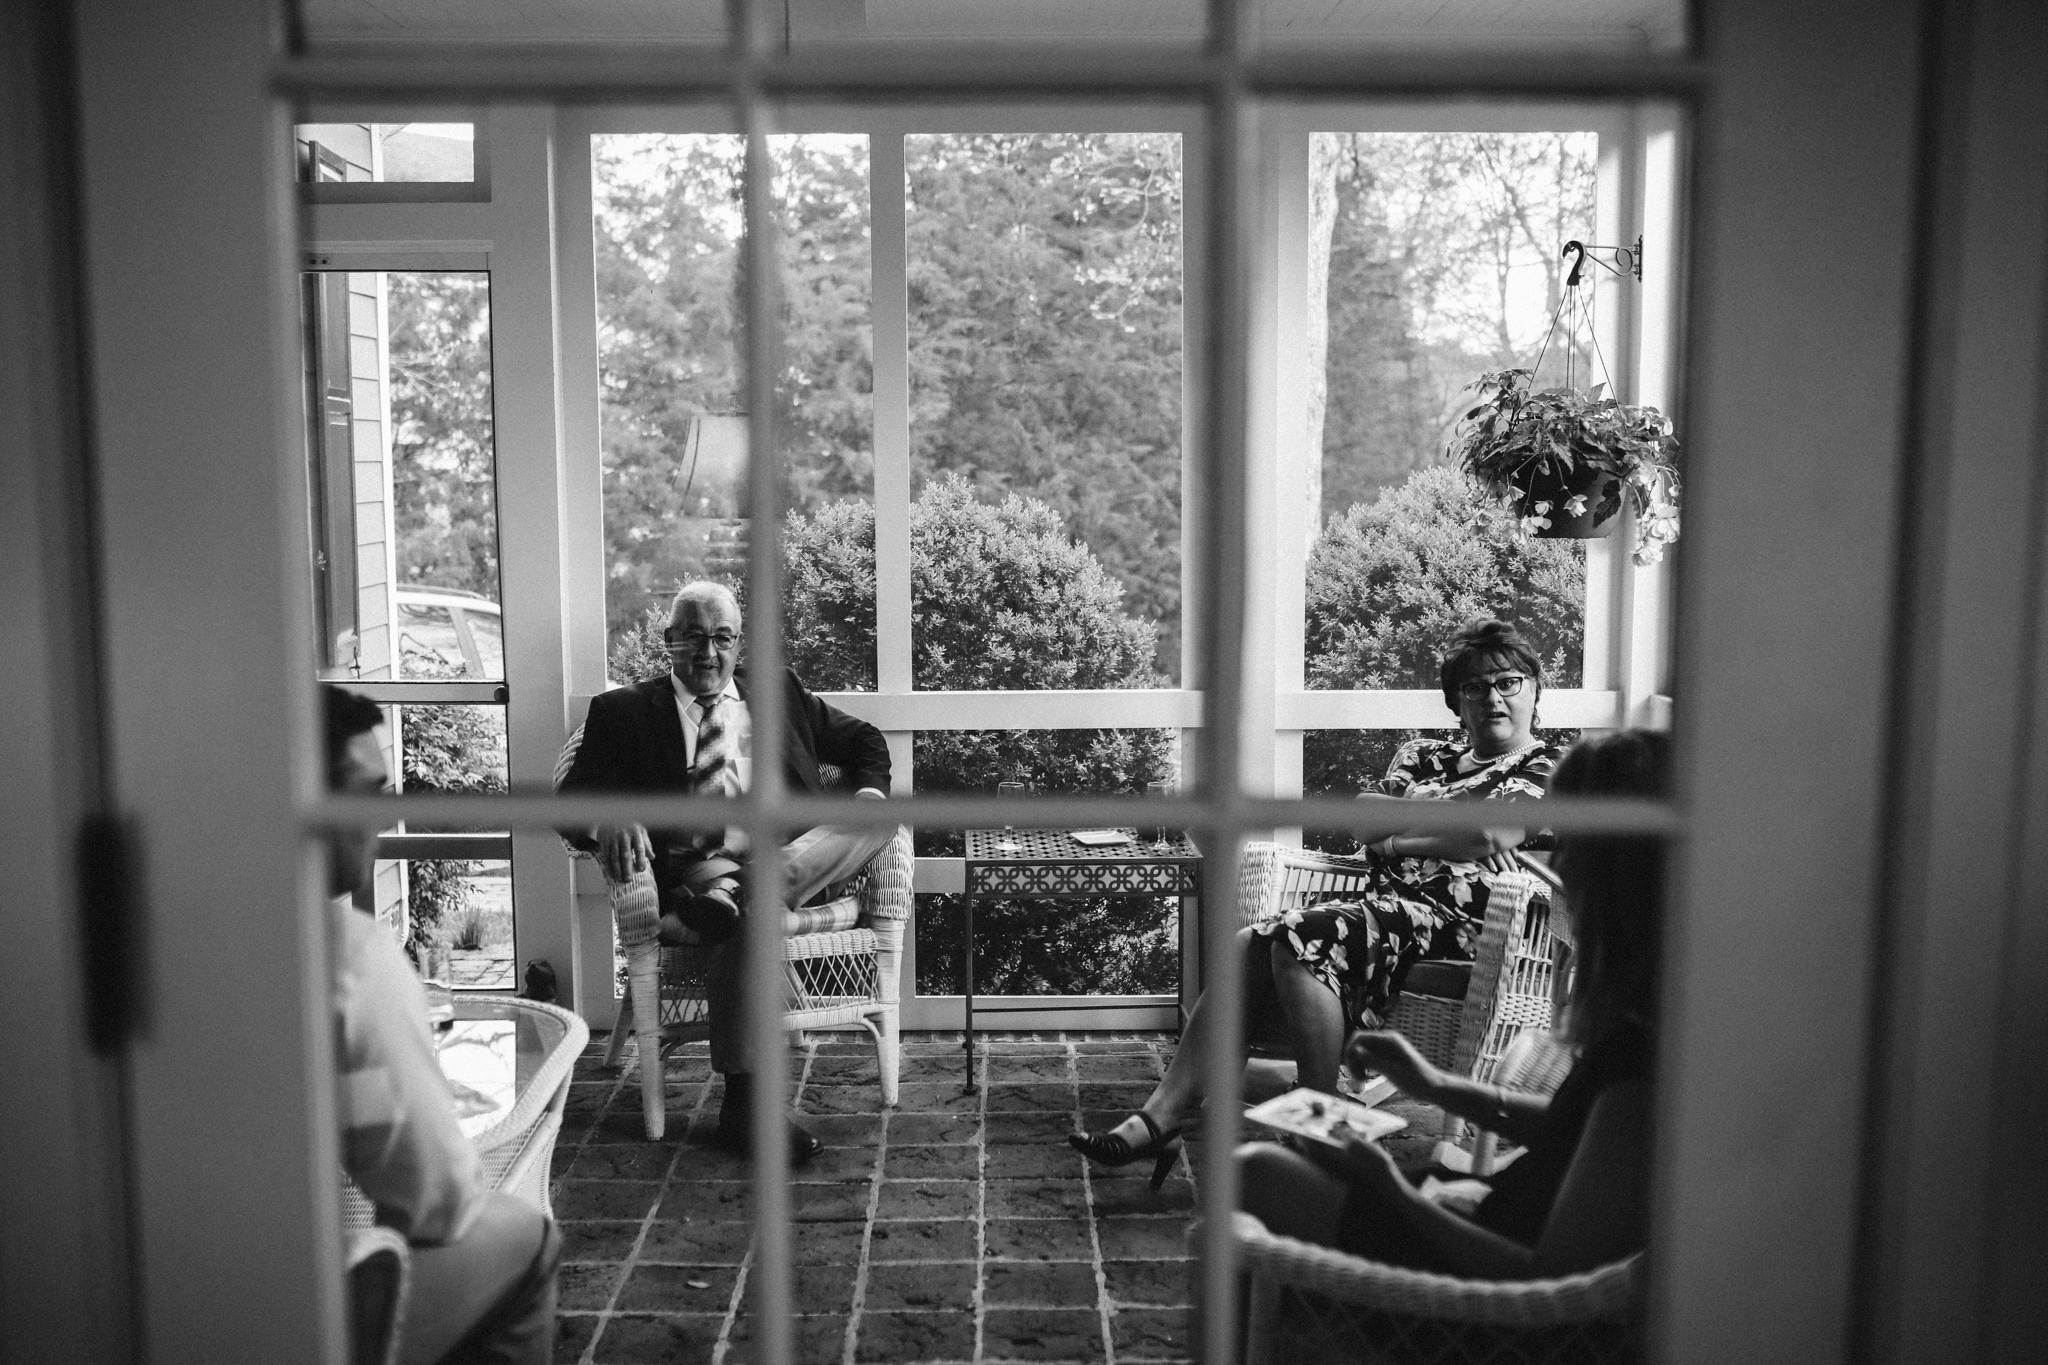 cook_wedding_richmond_virginia_rebecca_burt_photography-95.jpg